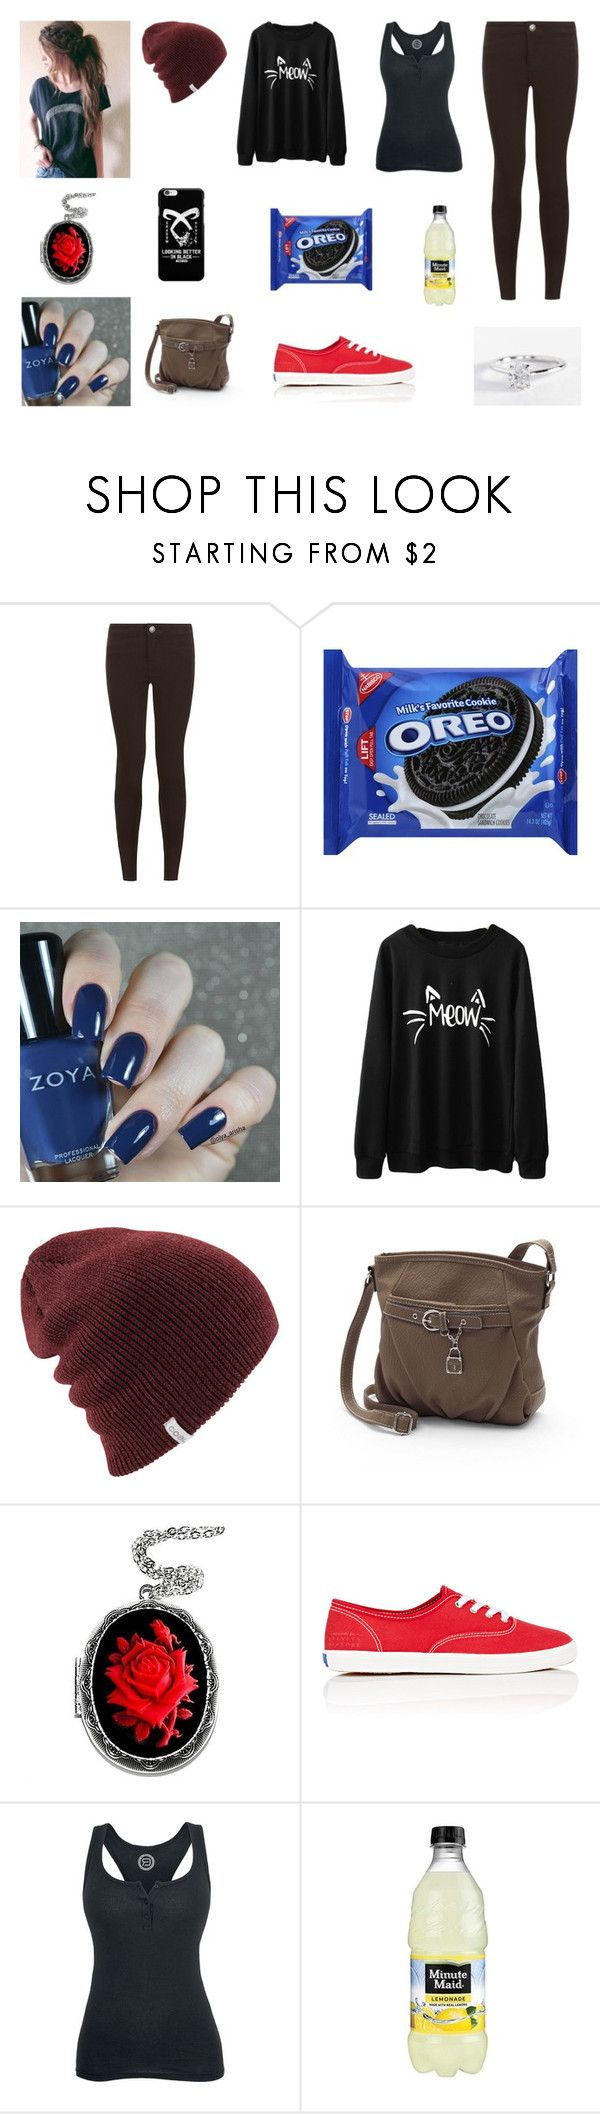 """""""going to Georgia"""" by fallen-326 on Polyvore featuring New Look, Rosetti, Couture by Lolita, Keds, men's fashion and menswear"""